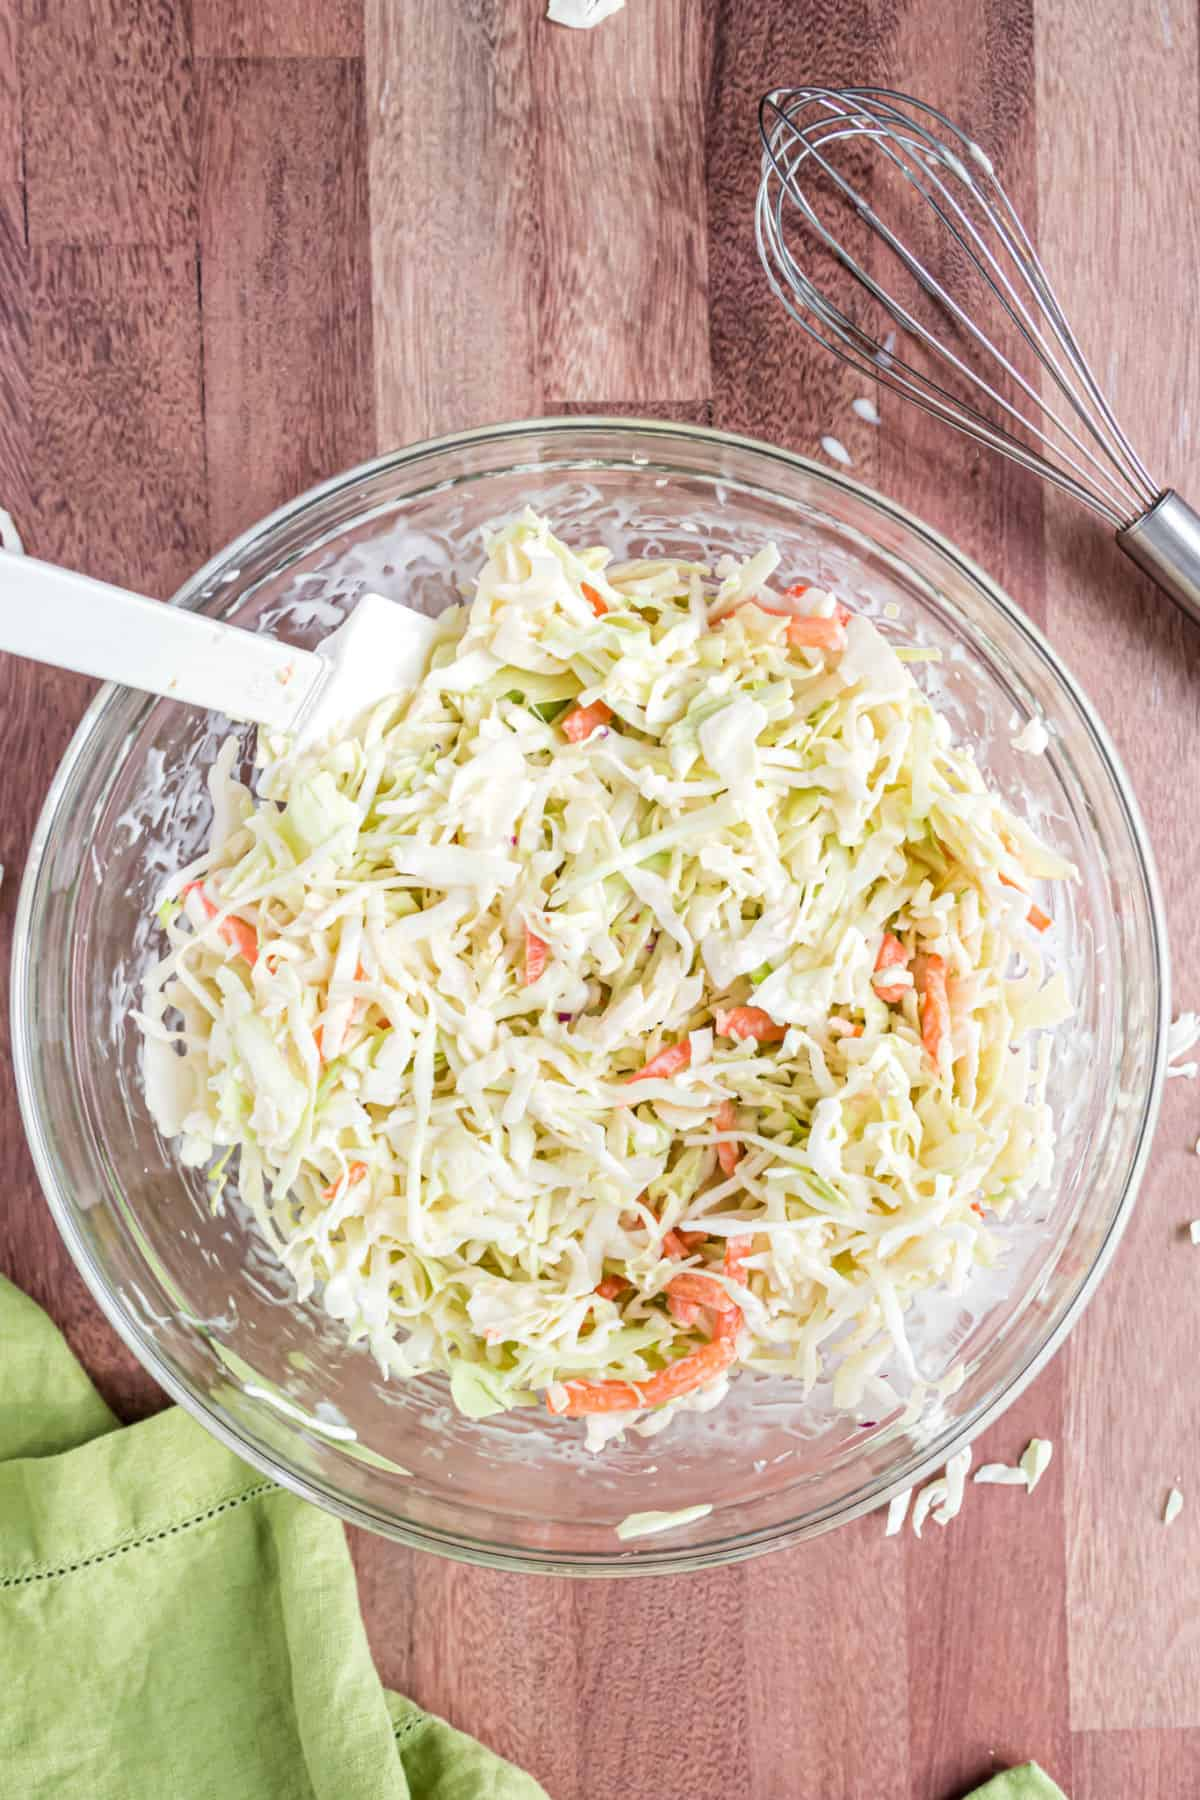 Creamy coleslaw in a clear glass bowl with white spatula.